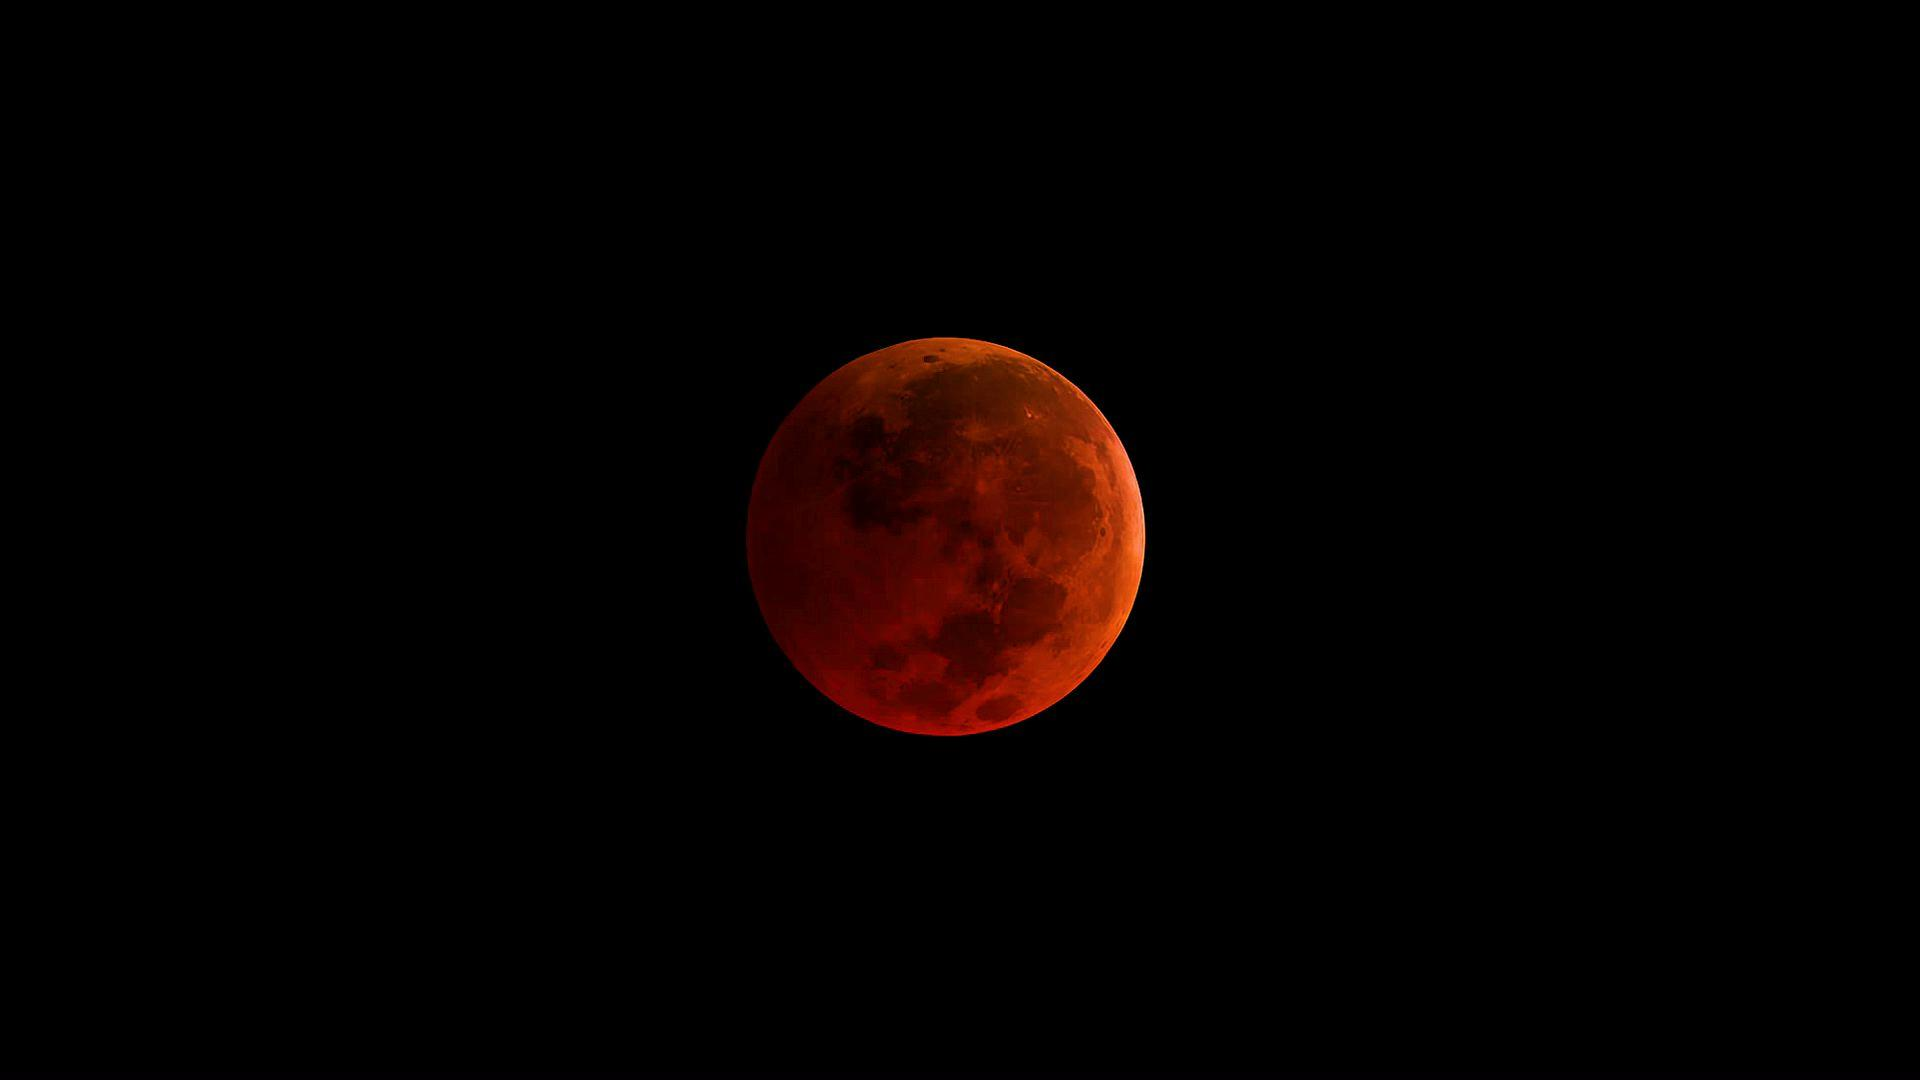 Chicago Not Well Placed for Super Blue Blood Moon Chicago News 1920x1080